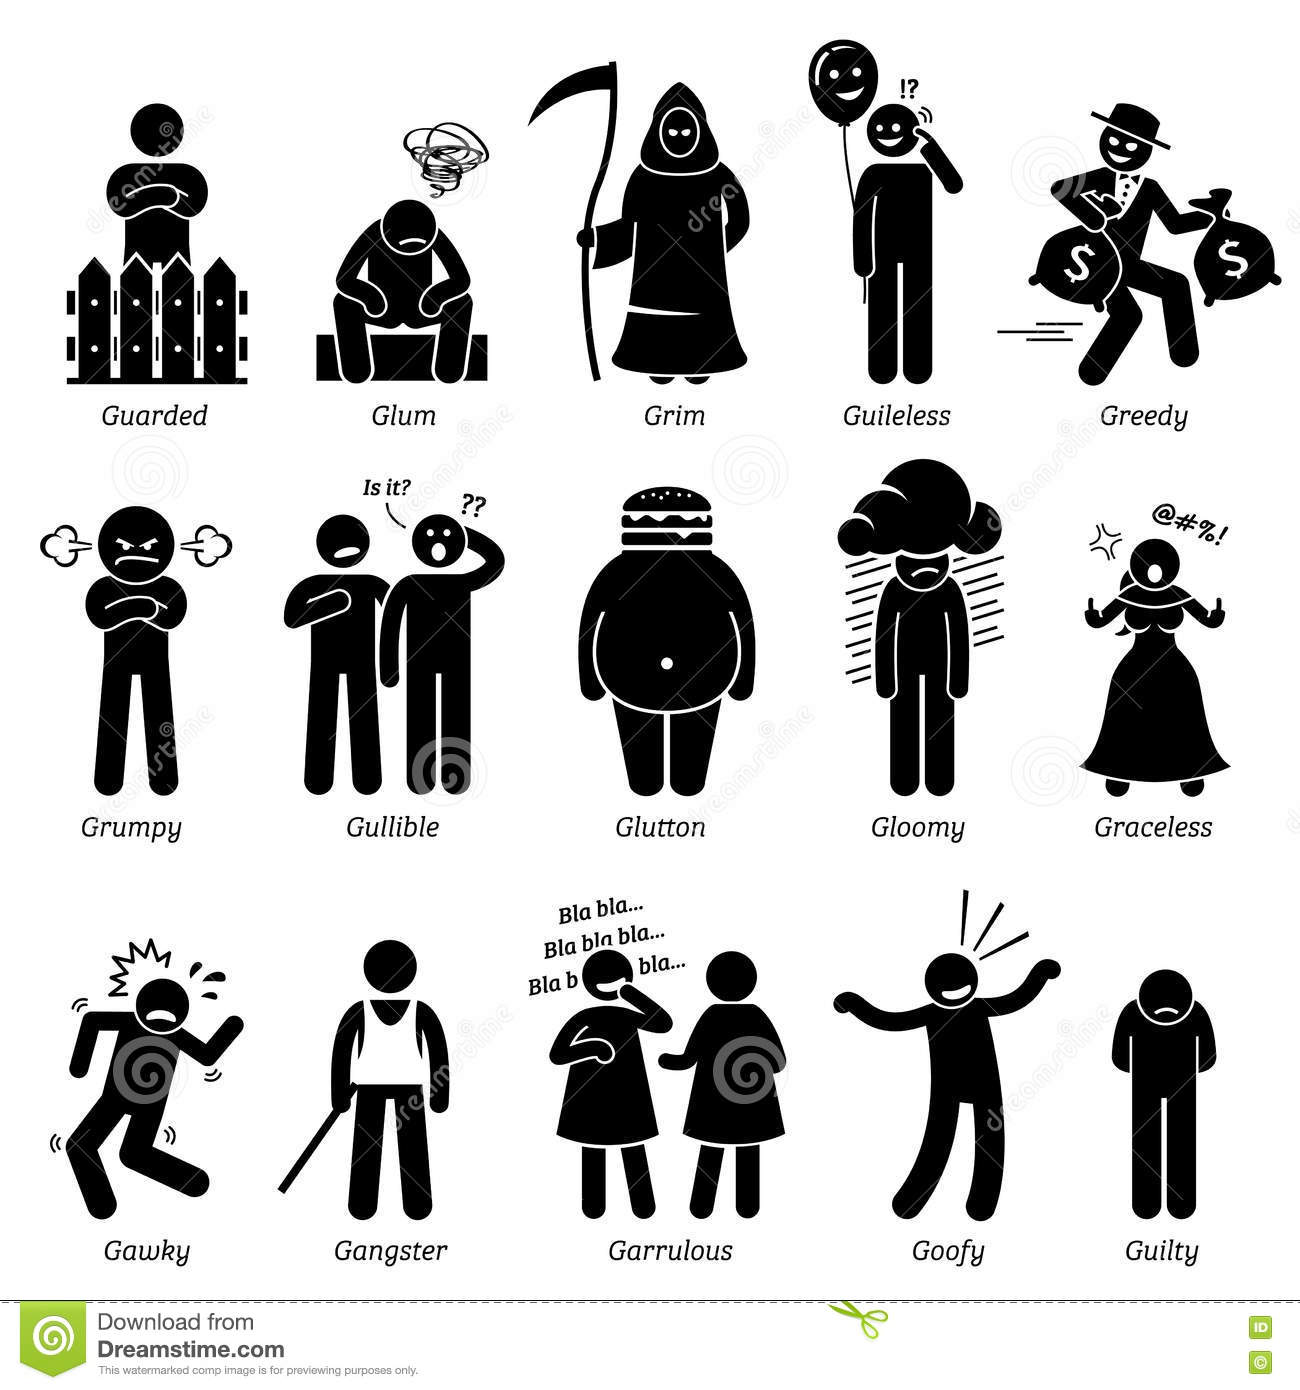 Negative Personalities Character Traits Clipart